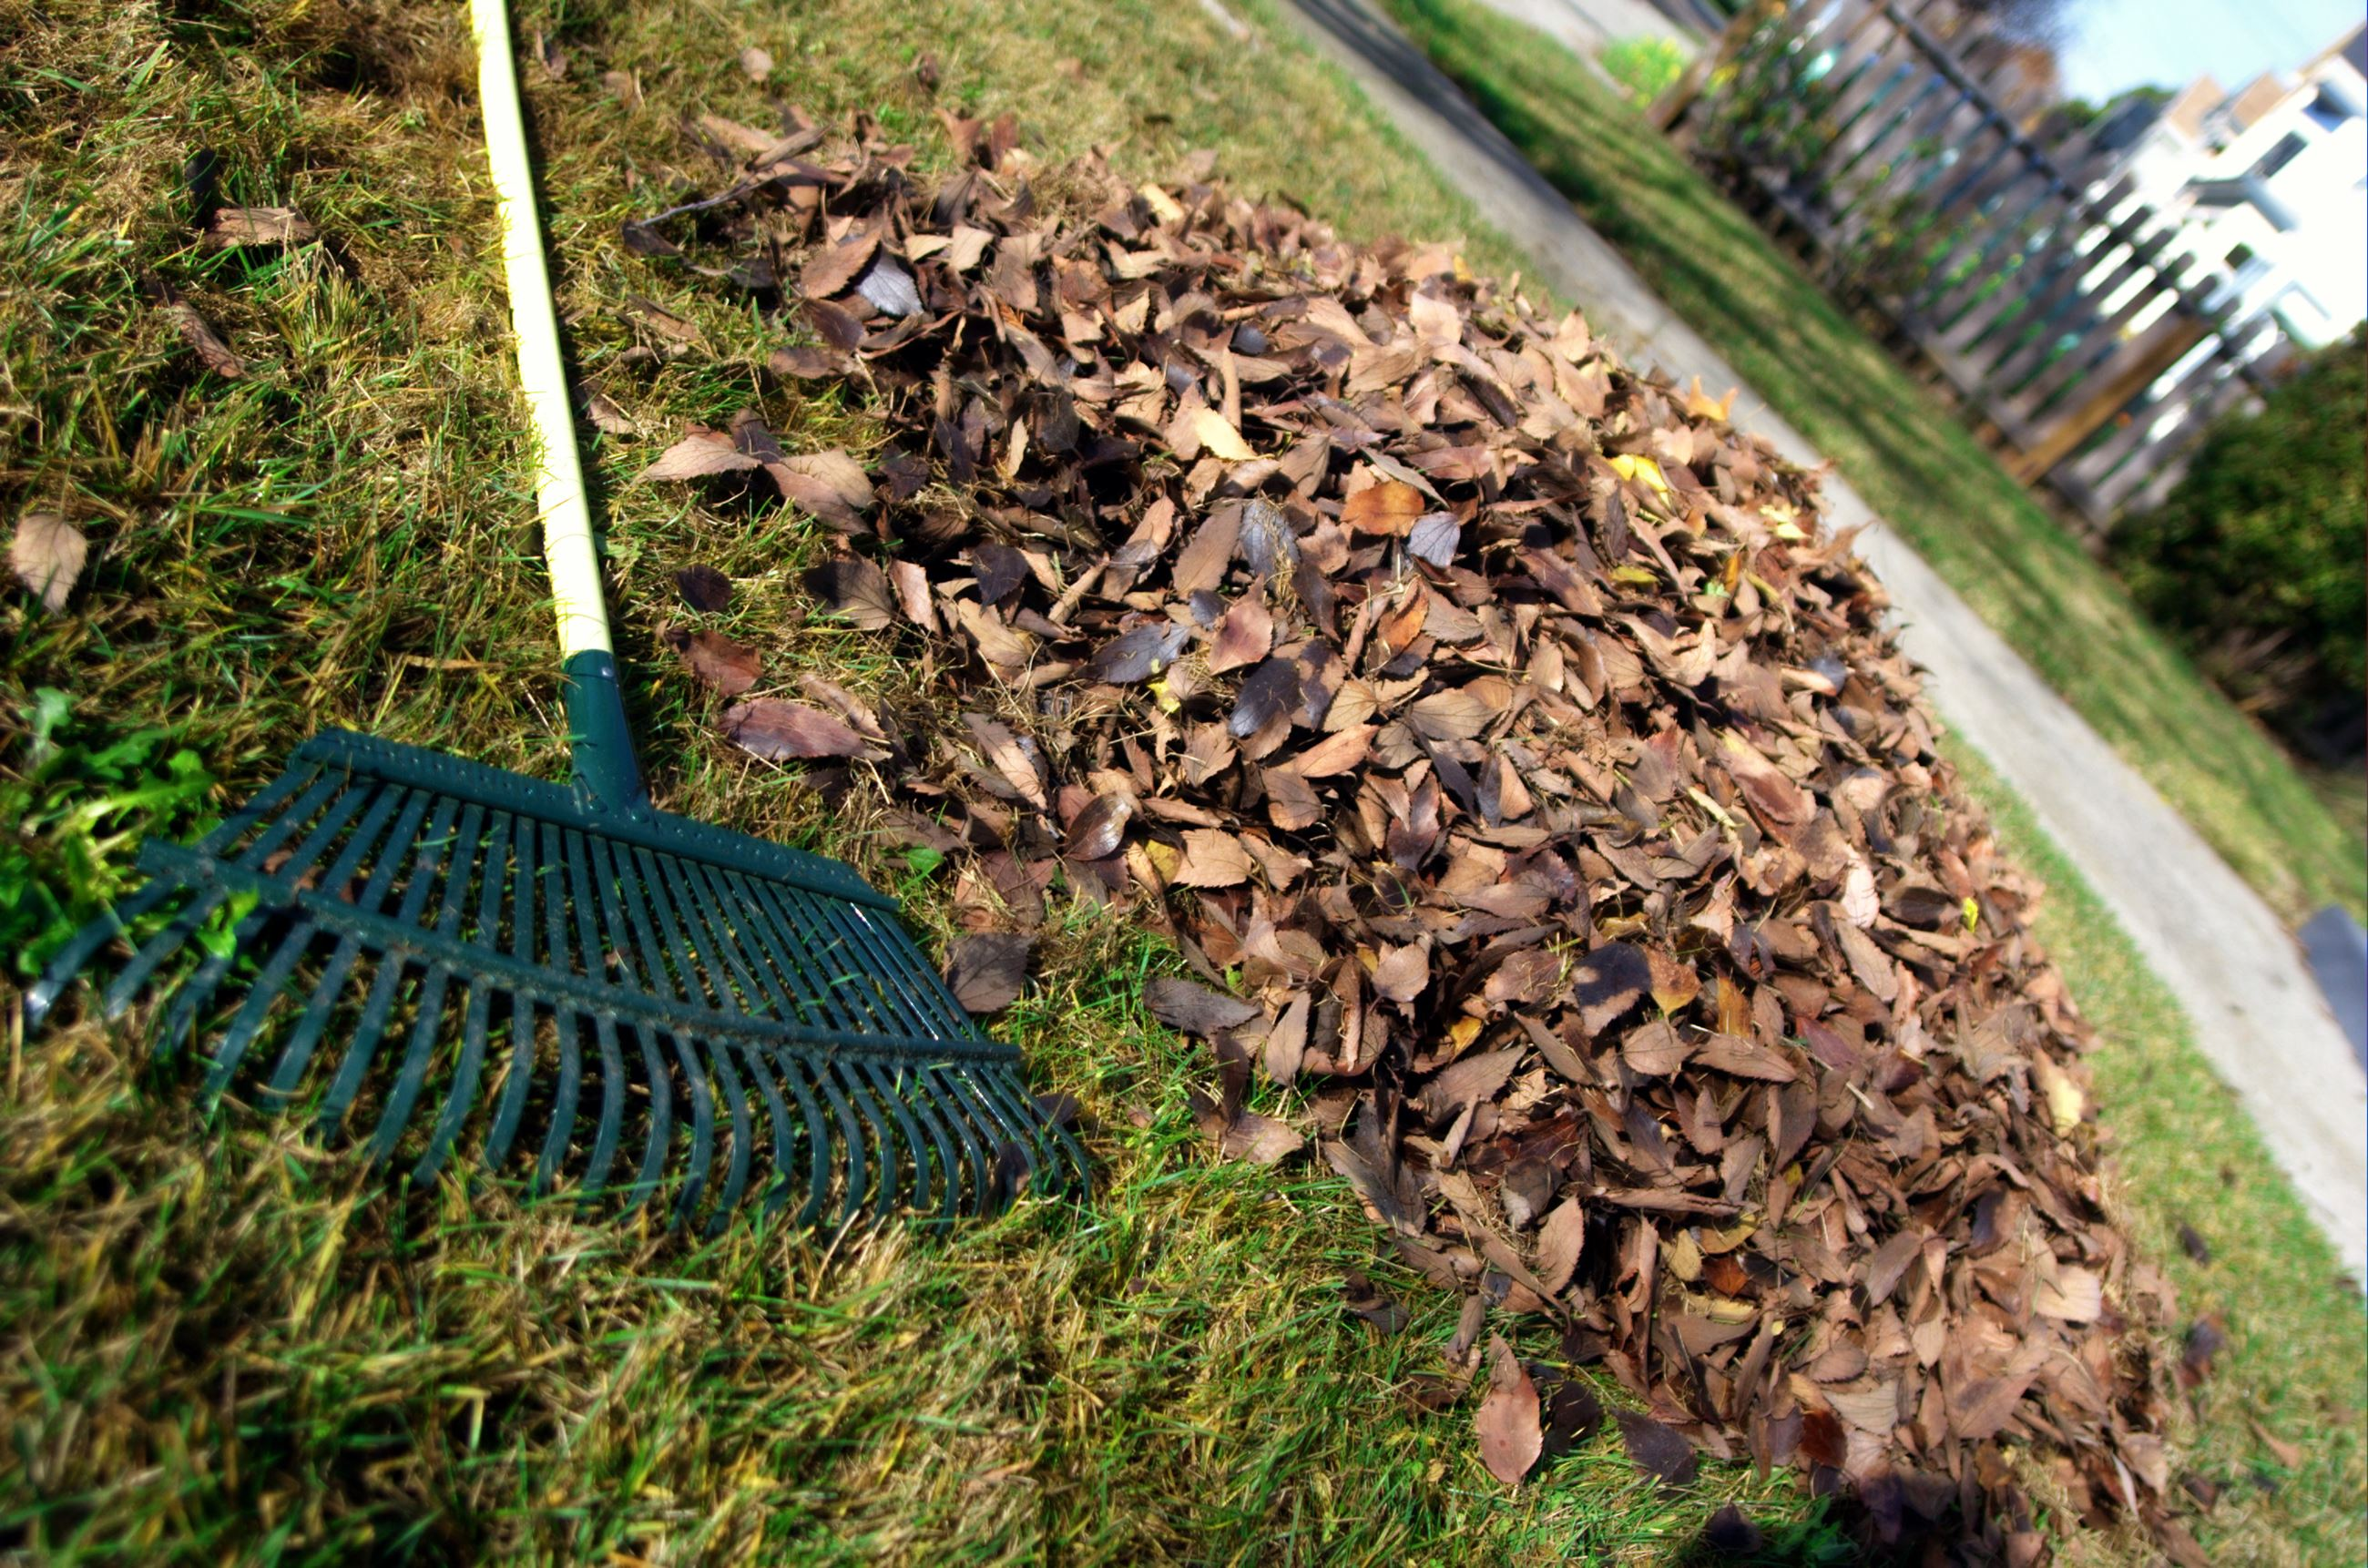 Yard waste image